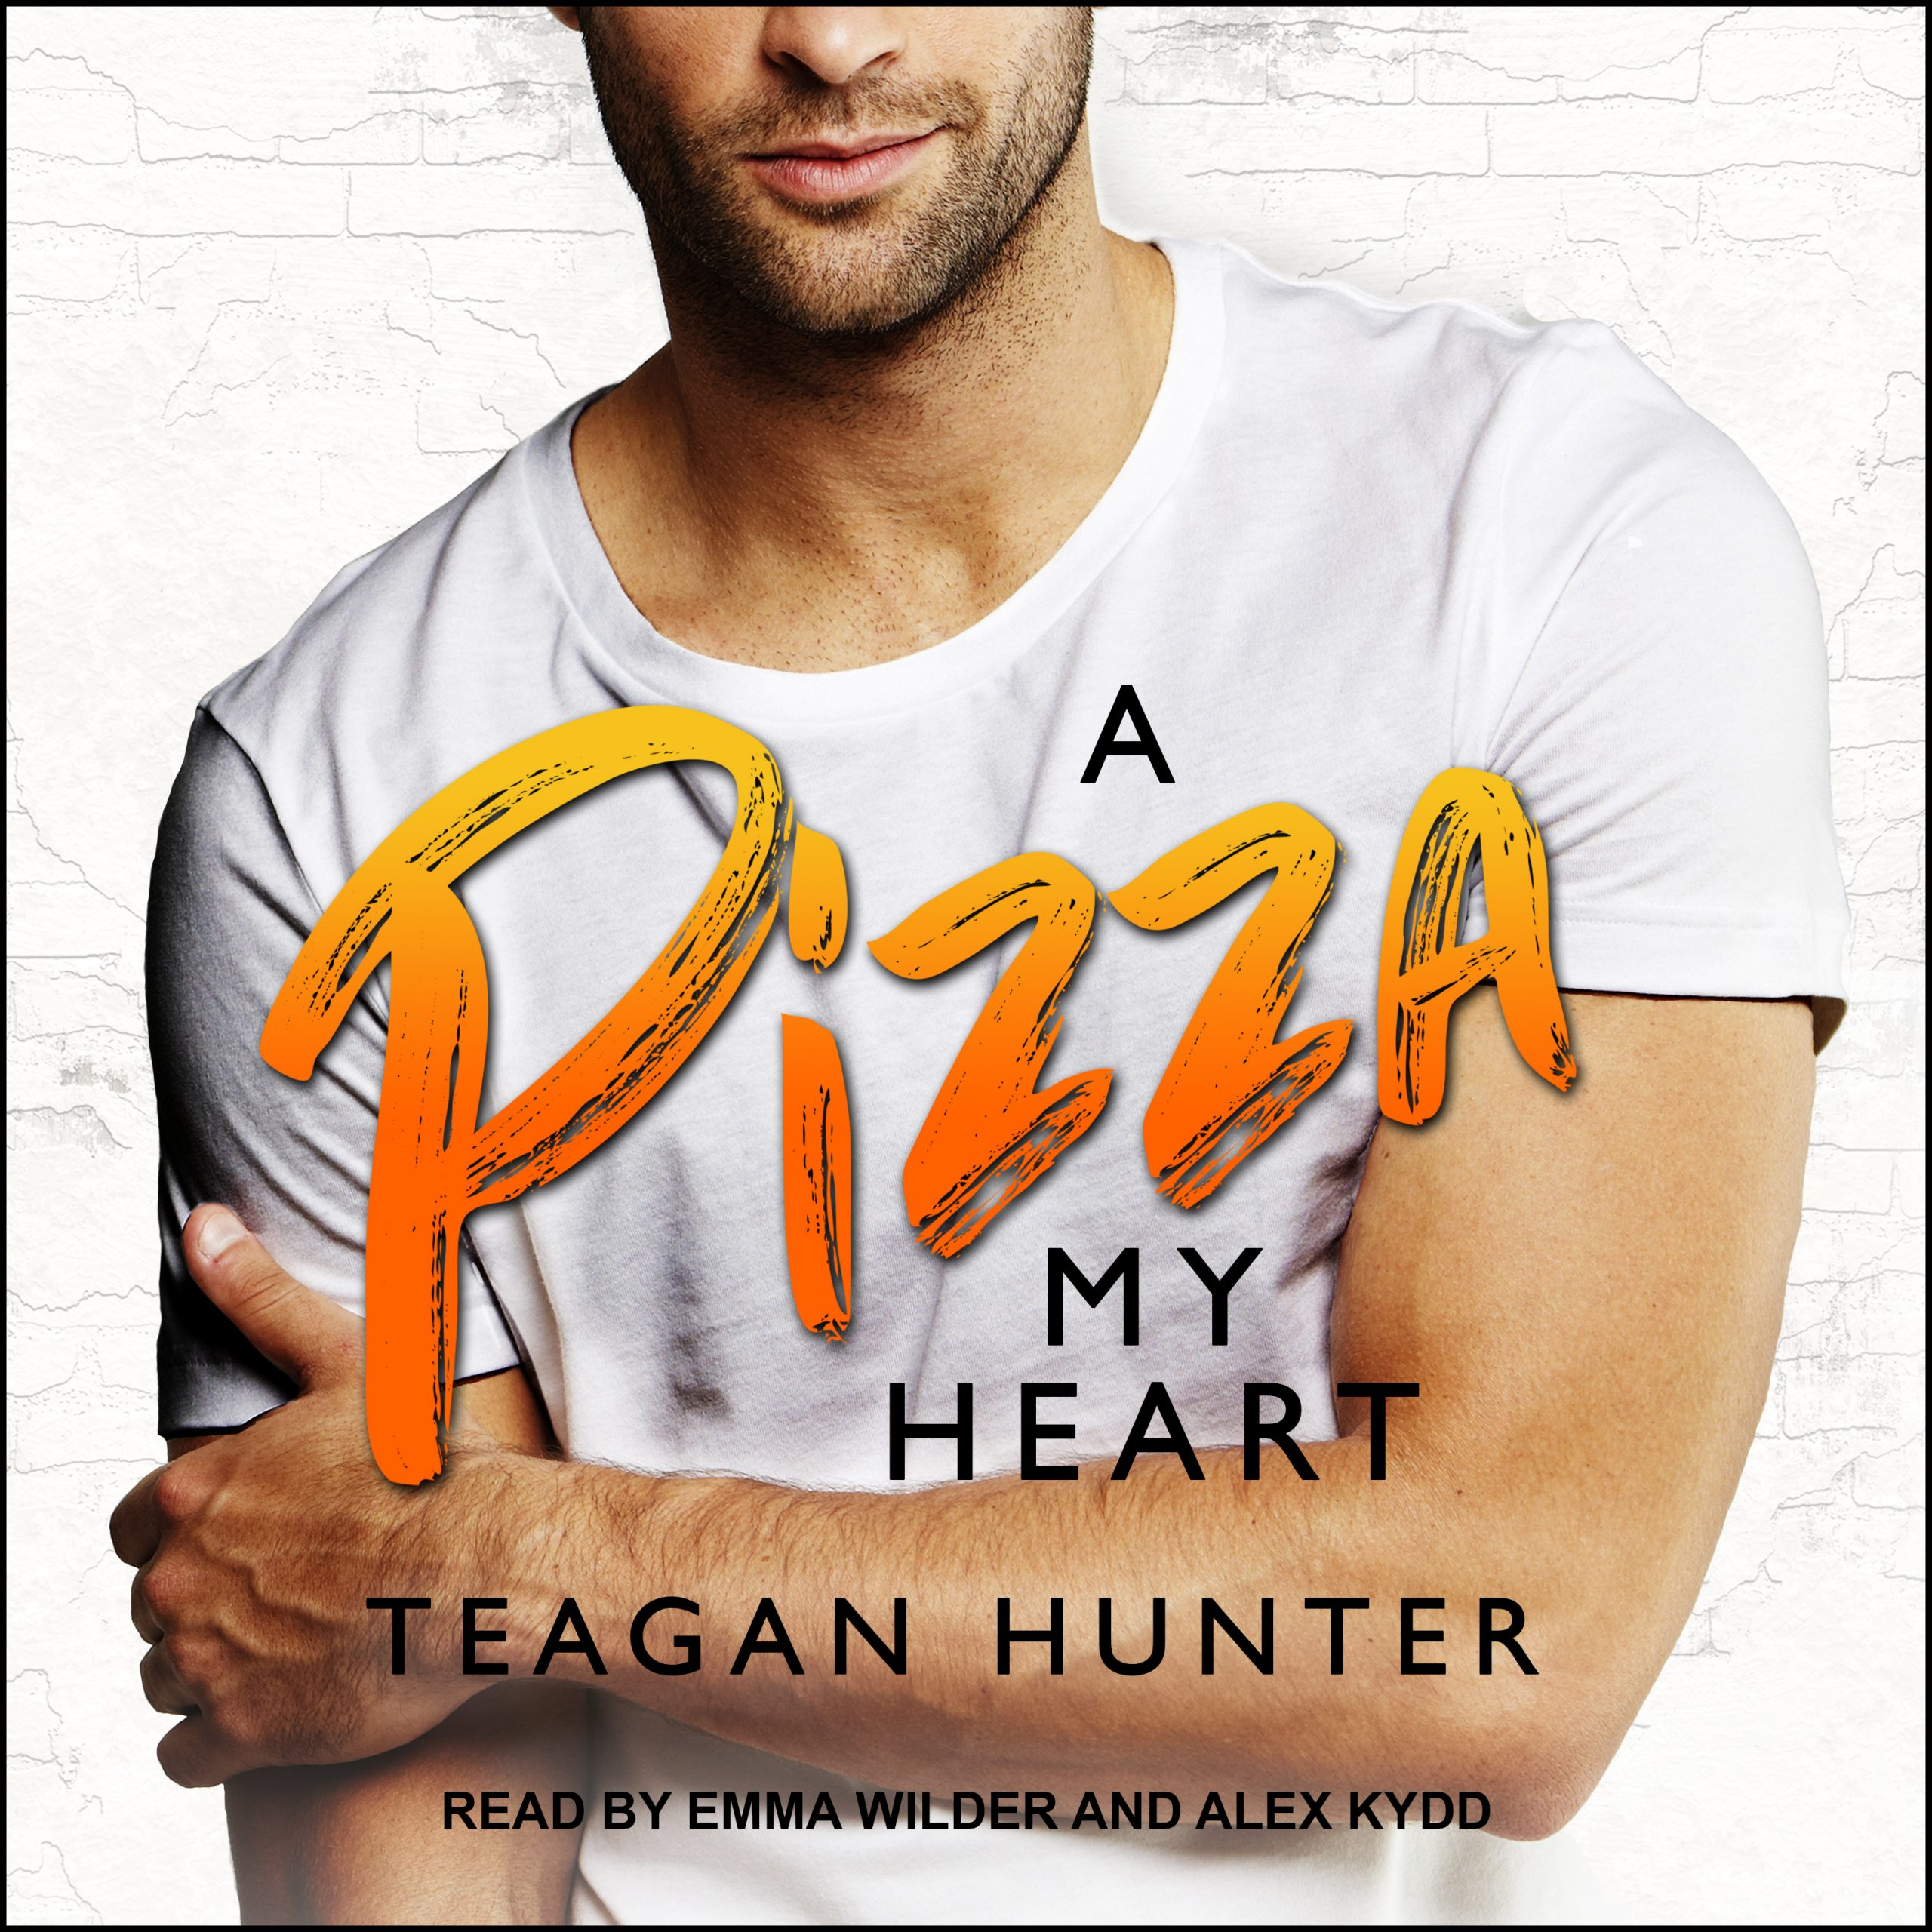 A Pizza My Heart Audio